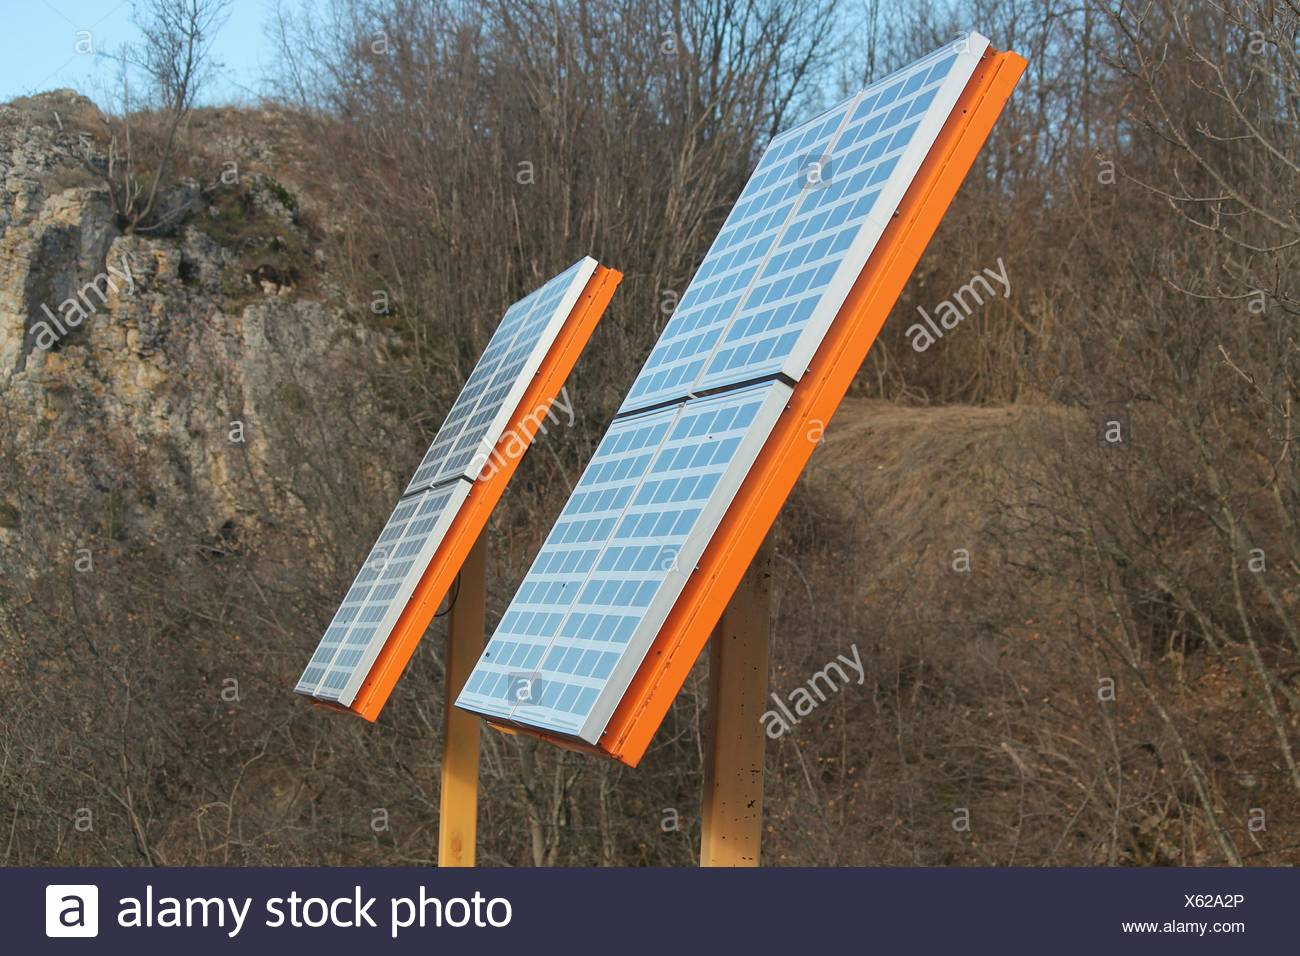 Solar Panels On Field Against Mountain - Stock Image